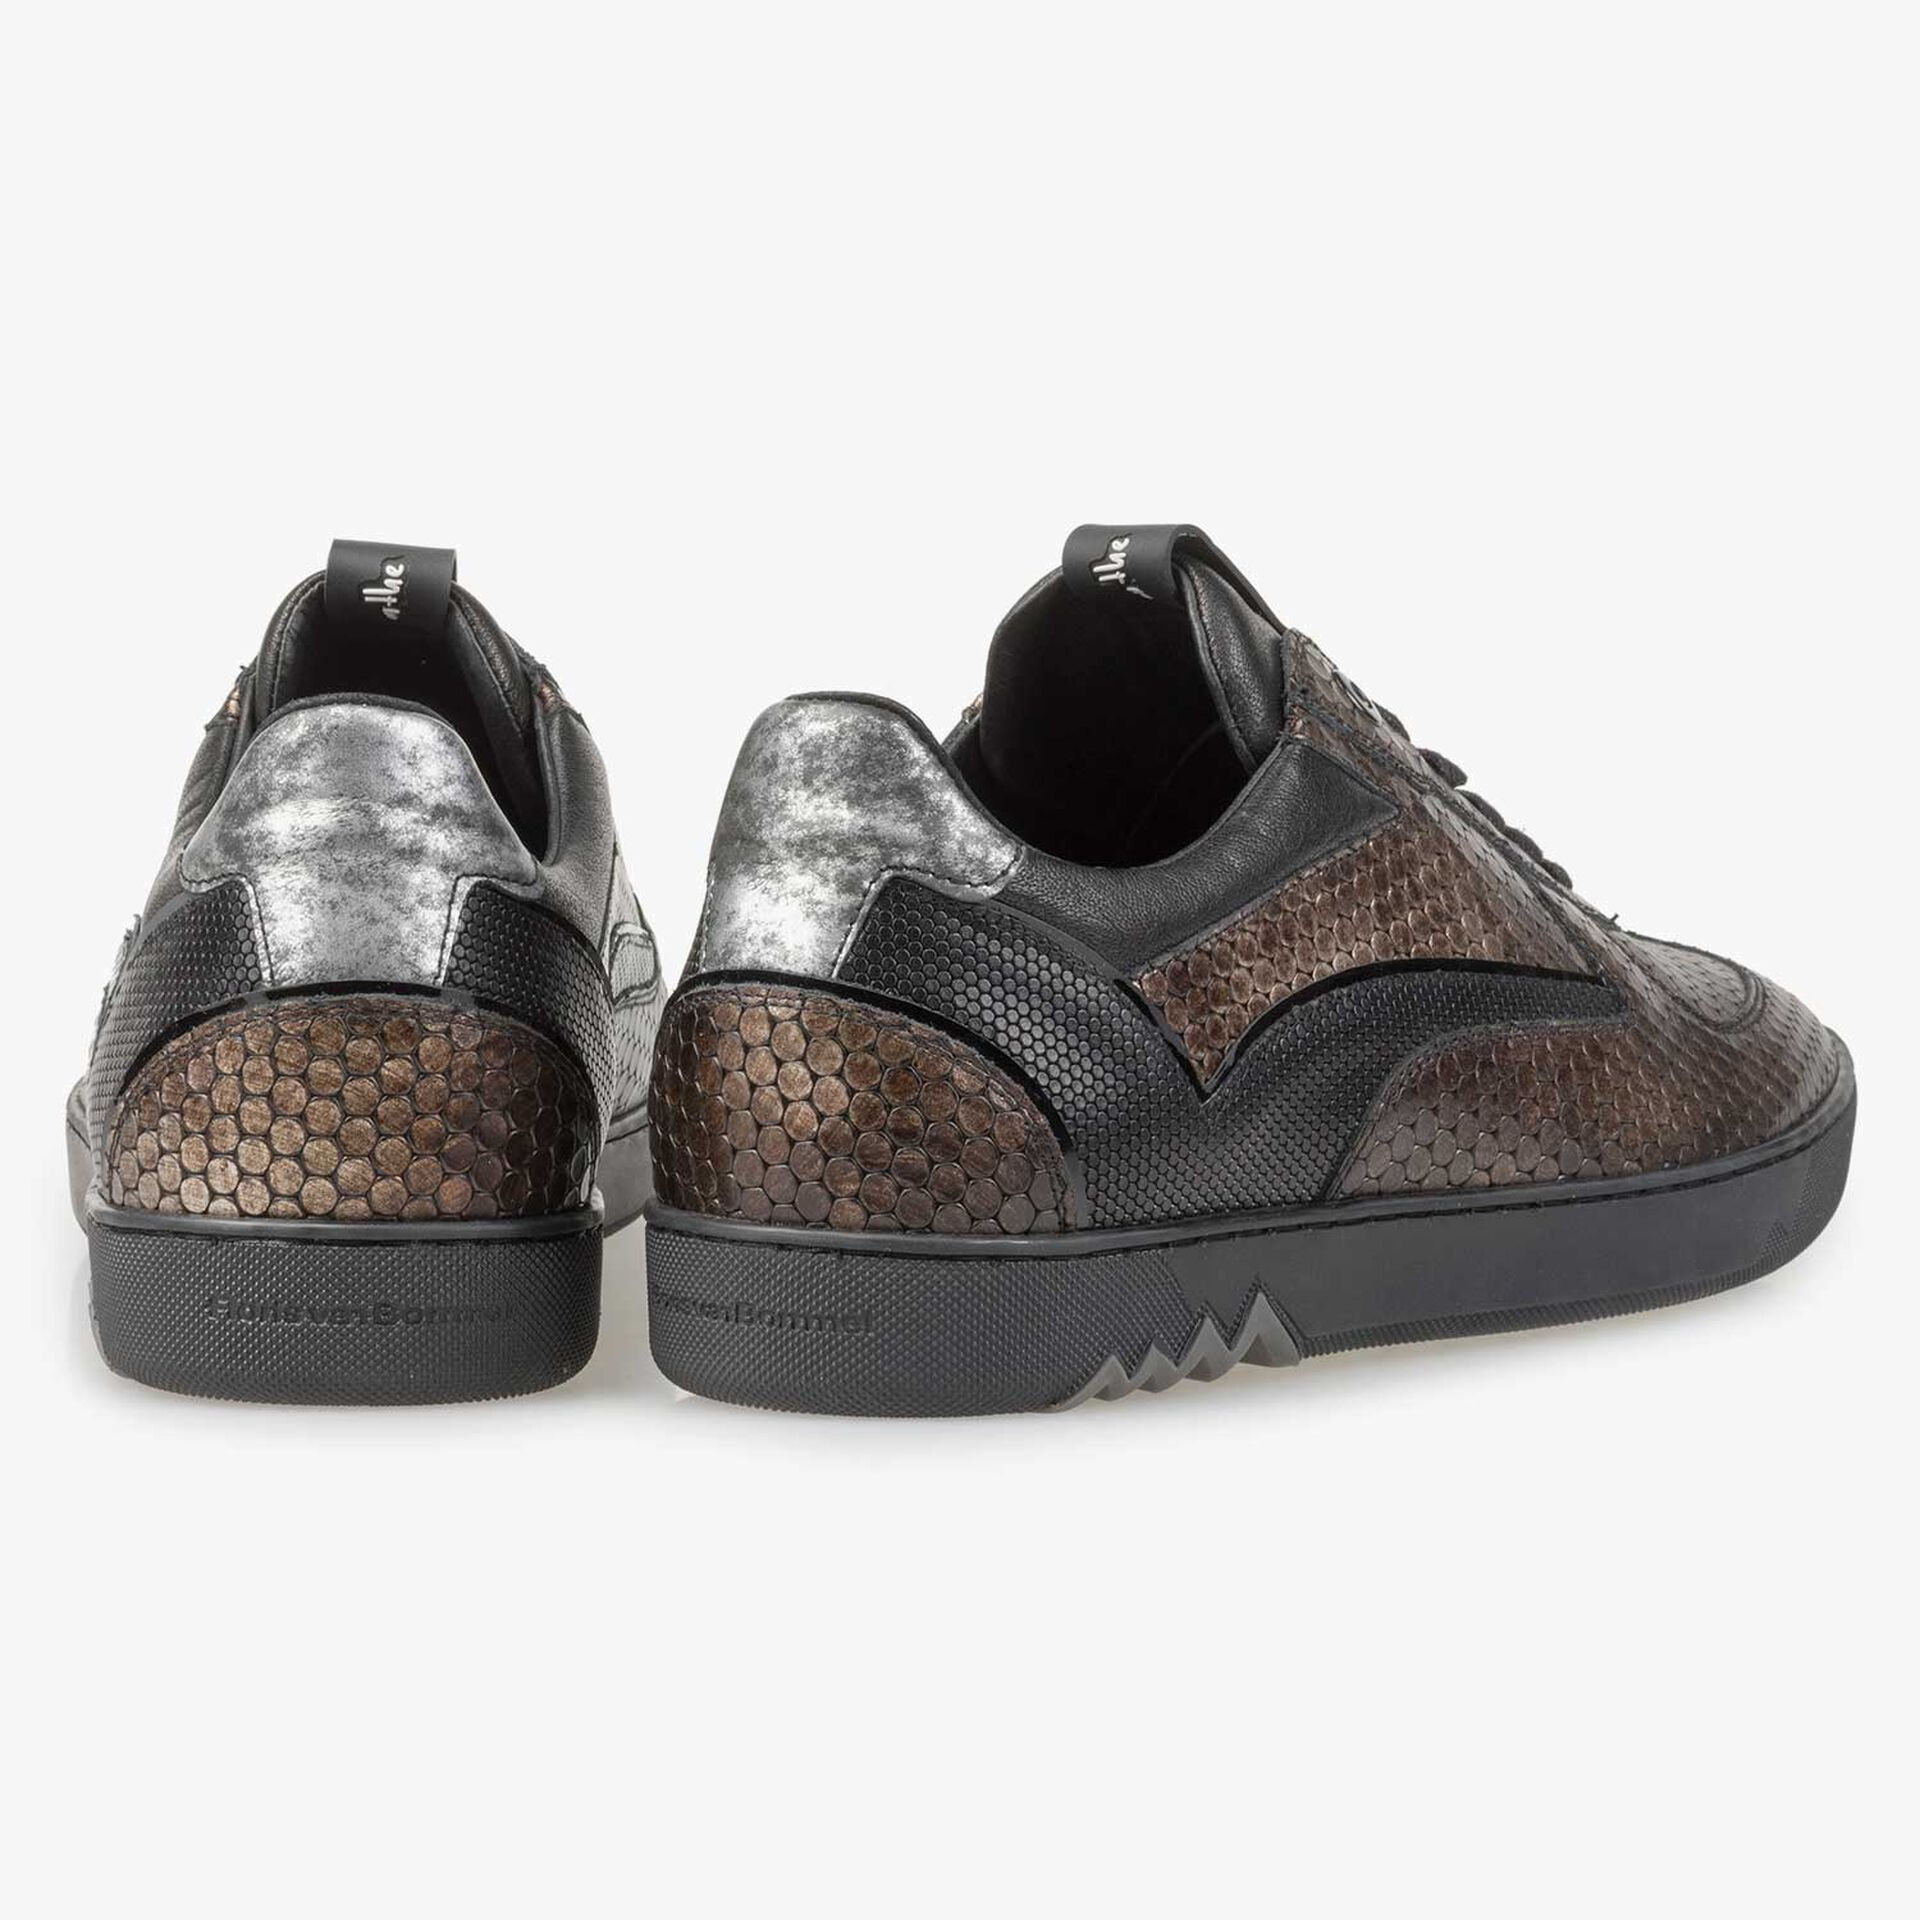 Brown leather sneaker with metallic print